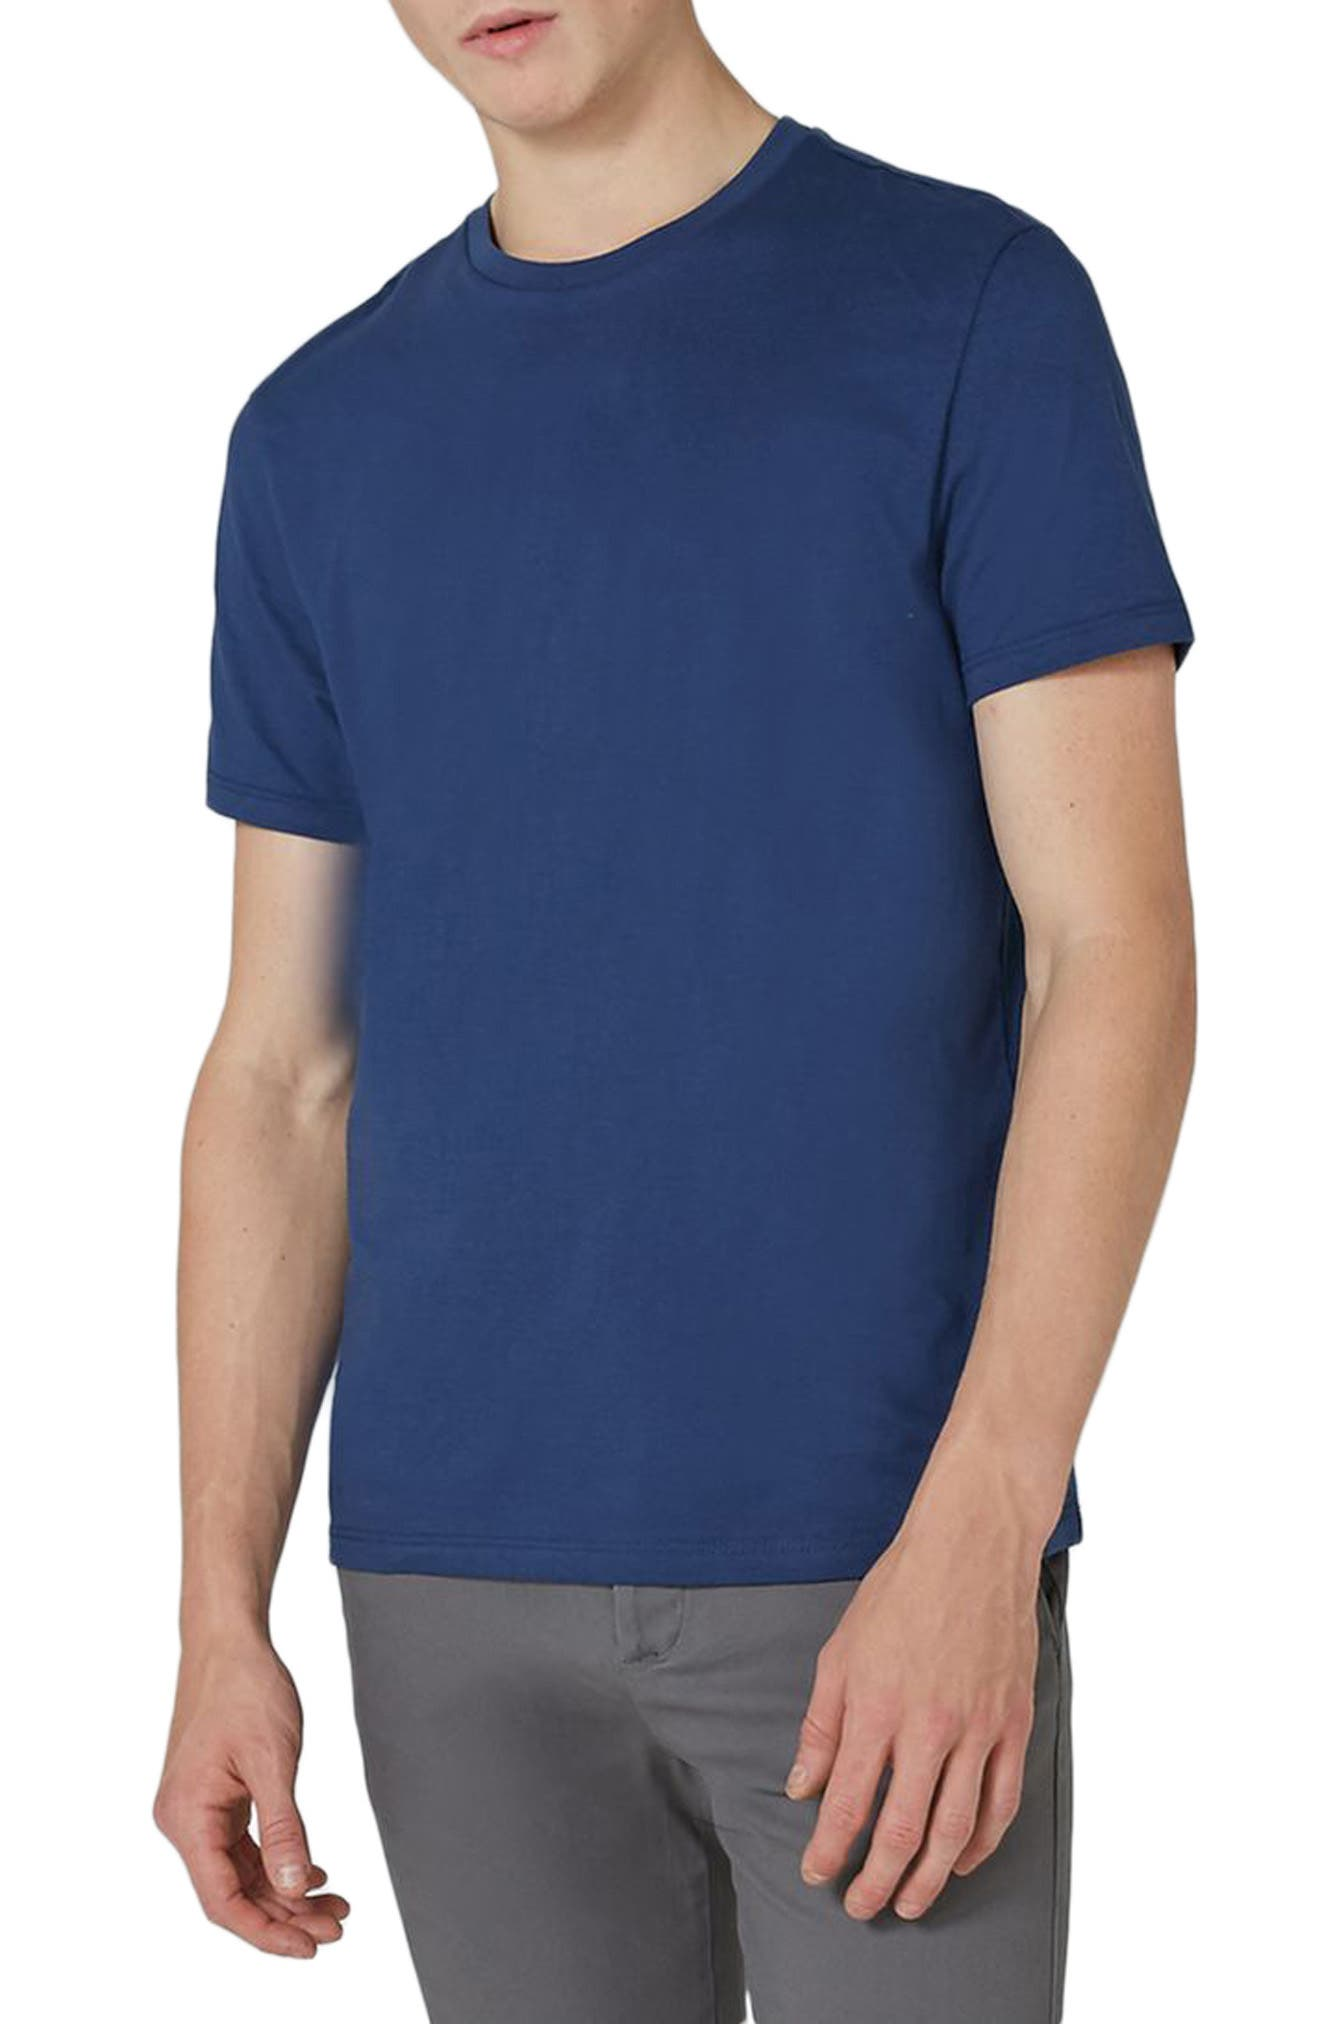 Alternate Image 1 Selected - Topman Slim Fit Crewneck T-Shirt